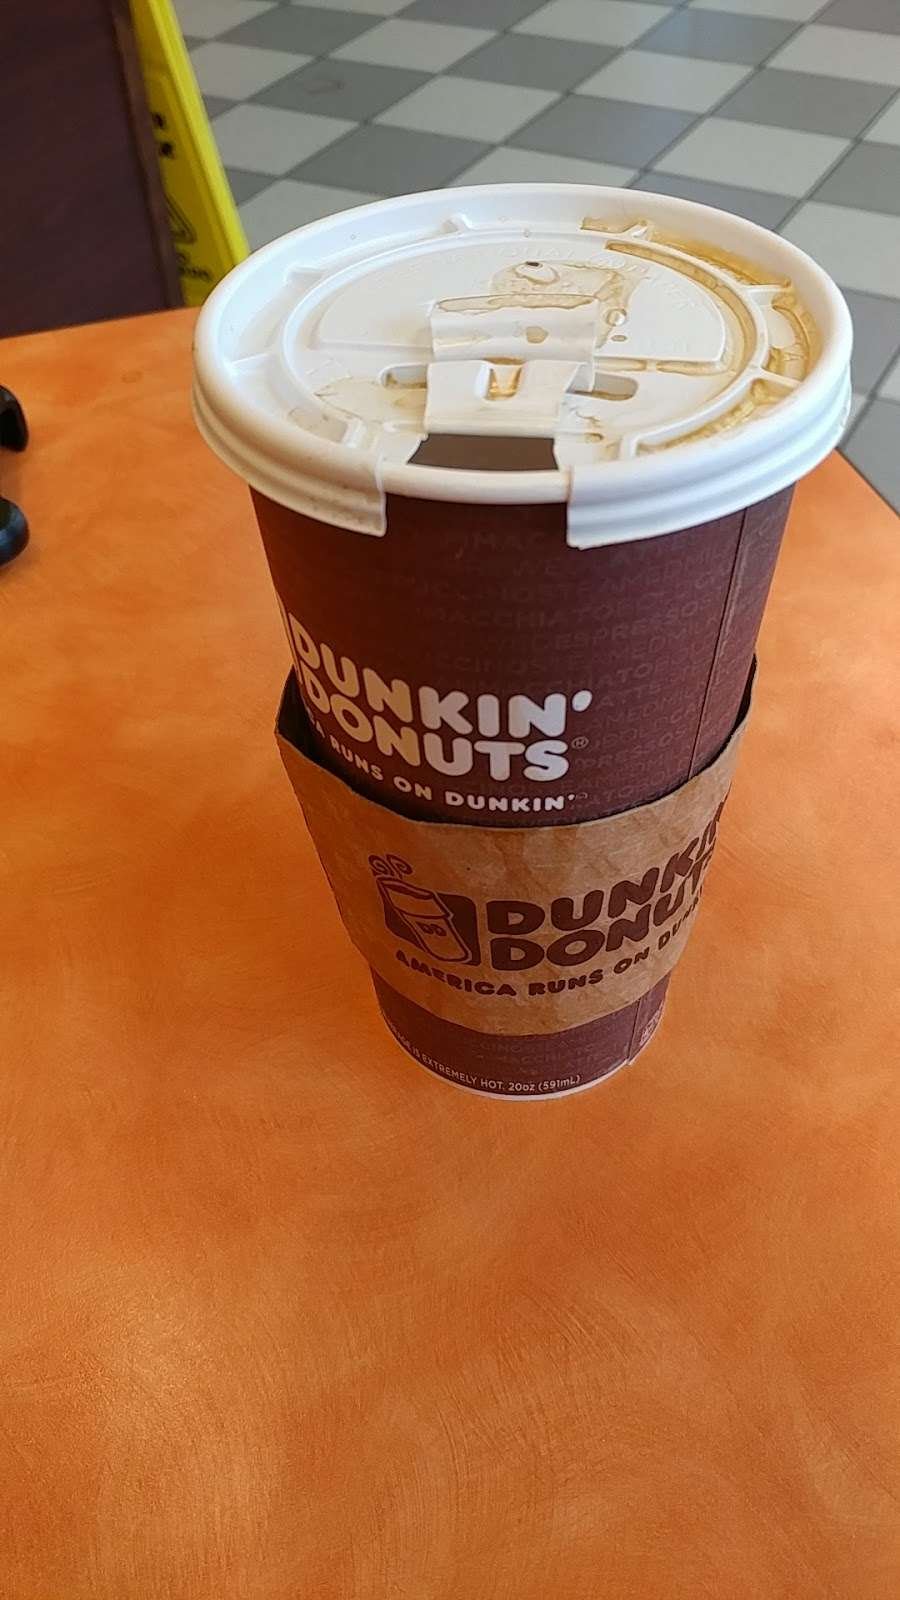 Dunkin Donuts - cafe  | Photo 5 of 10 | Address: 850 Bronx River Rd, Yonkers, NY 10708, USA | Phone: (914) 237-5921